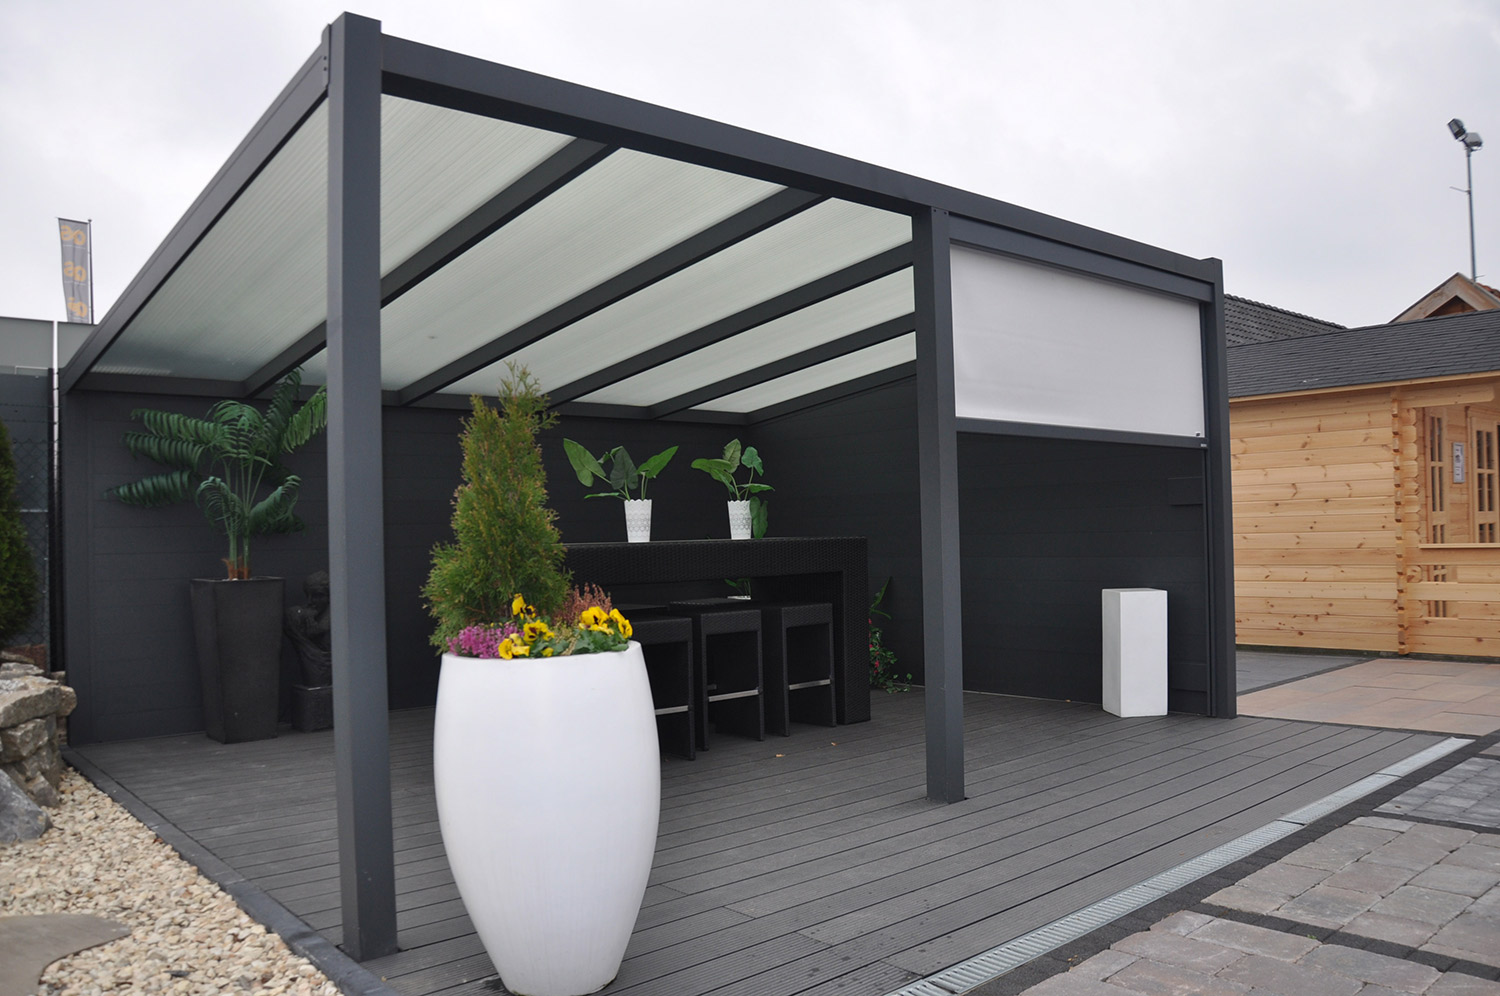 protections solaires pour pergolas et v randas avec stores ou voiles d 39 ombrage. Black Bedroom Furniture Sets. Home Design Ideas